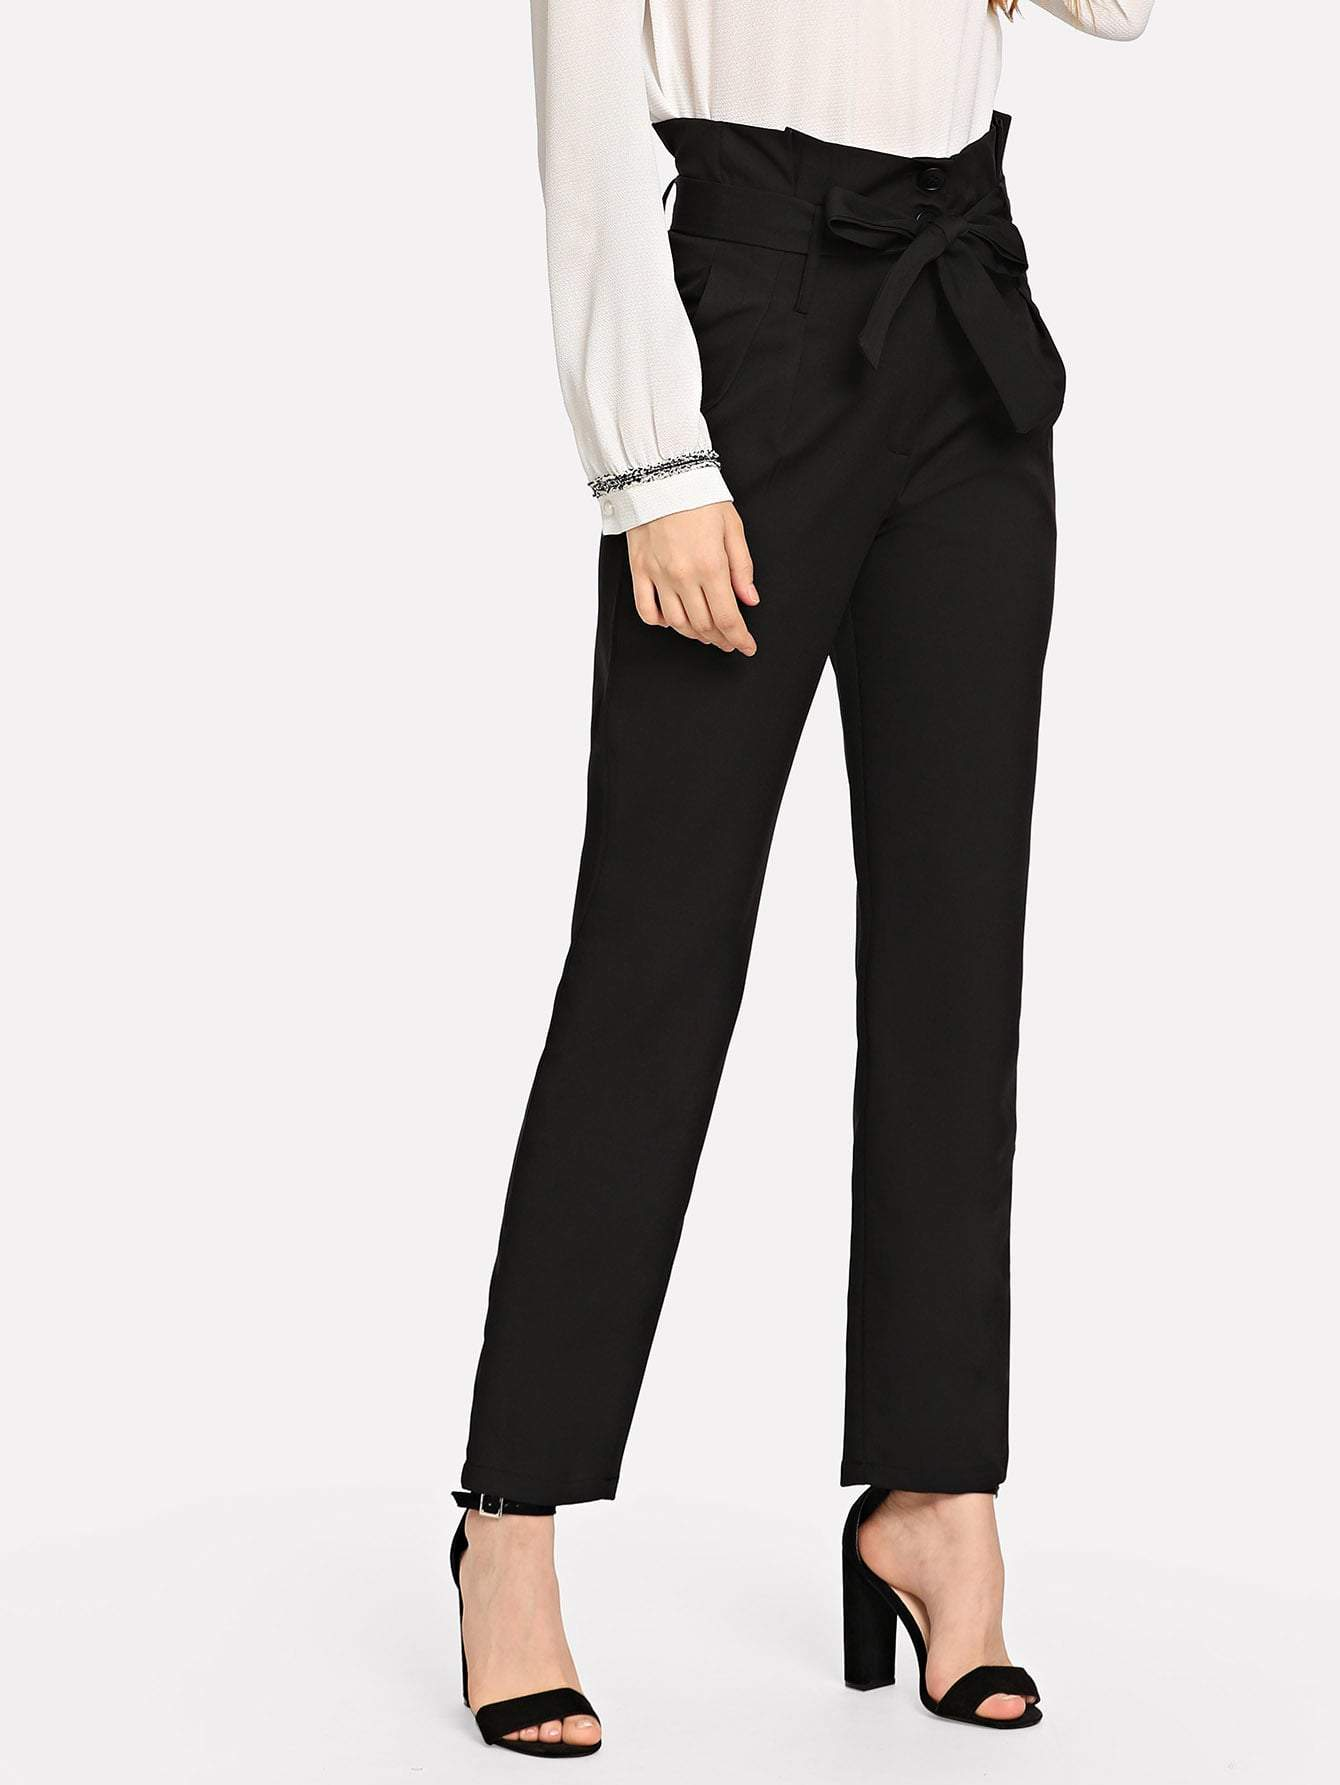 Ruffle Detail Belted Pants